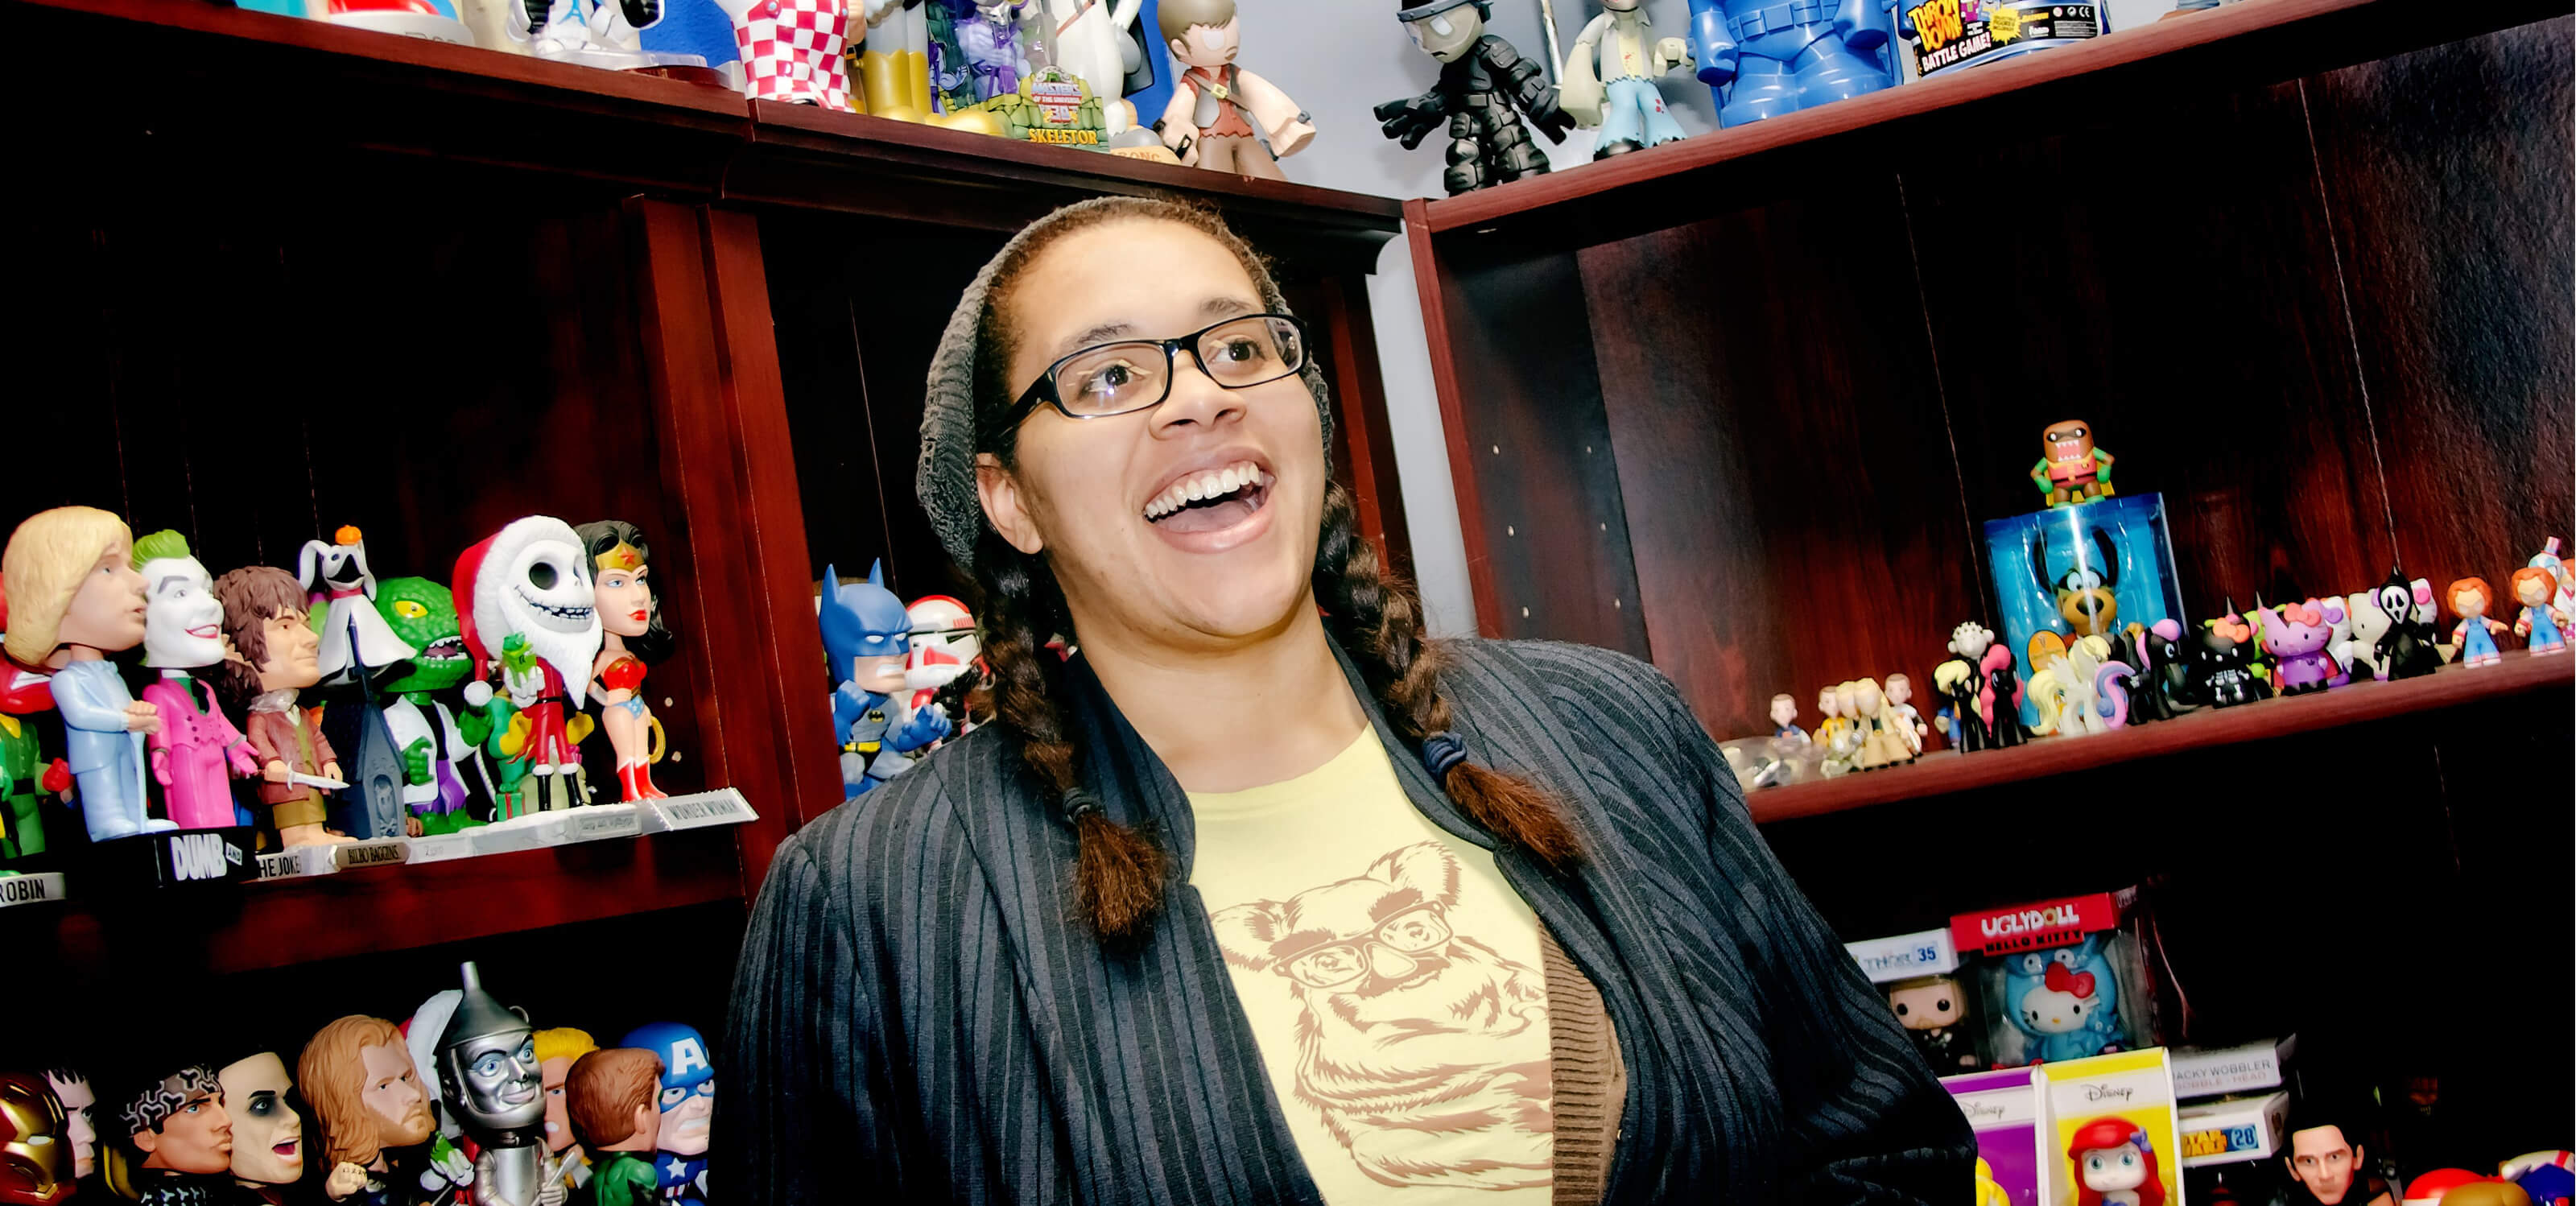 DigiPen BFA alumna Nnenna Ijiomah smiling in front of bookshelves filled with Funko figurines at the Funko office